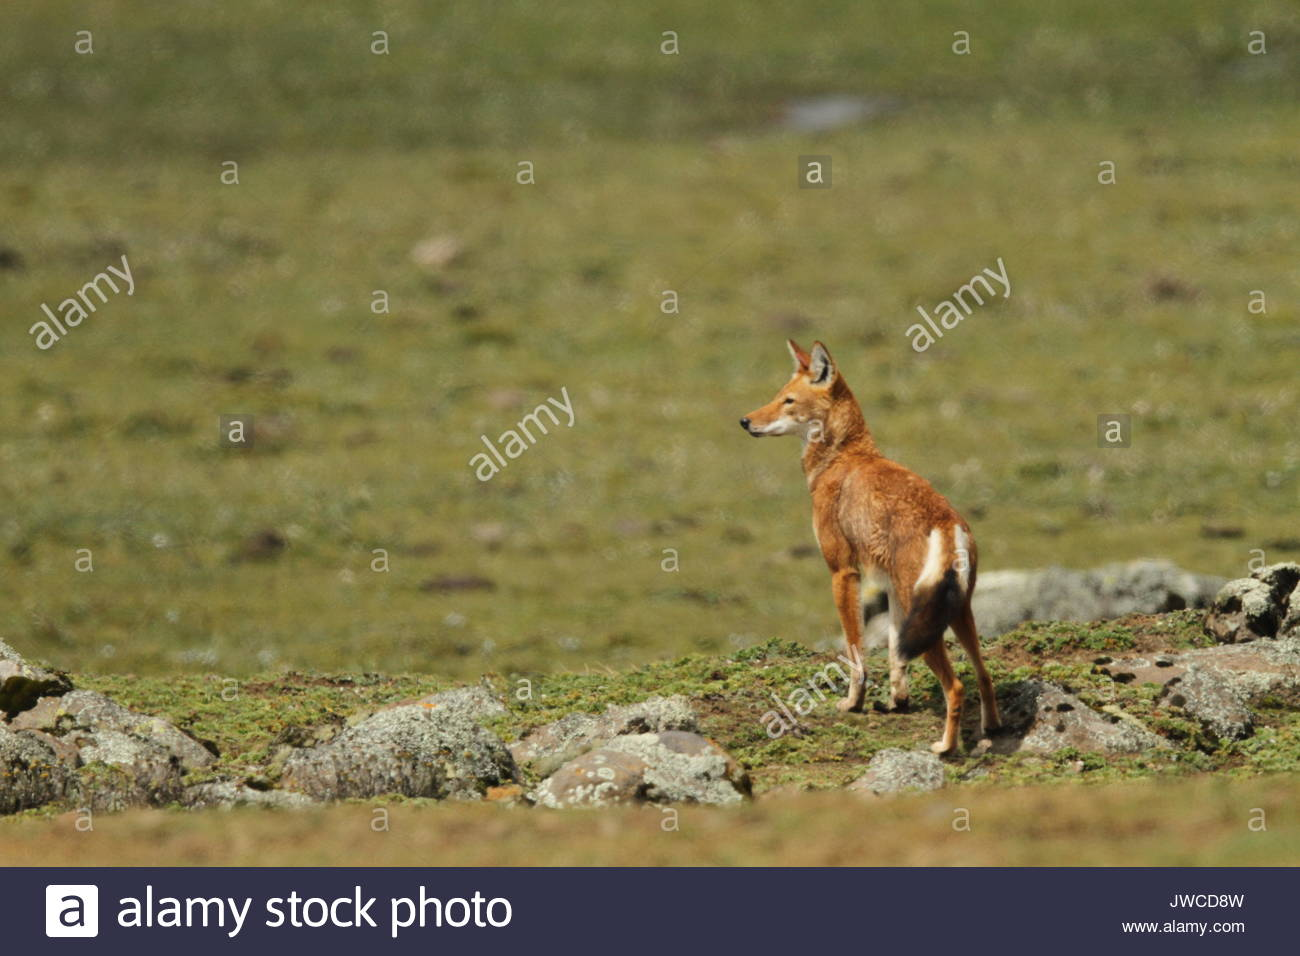 An alert Ethiopian wolf,Canis simensis,stands in Bale Mountains National Park. - Stock Image